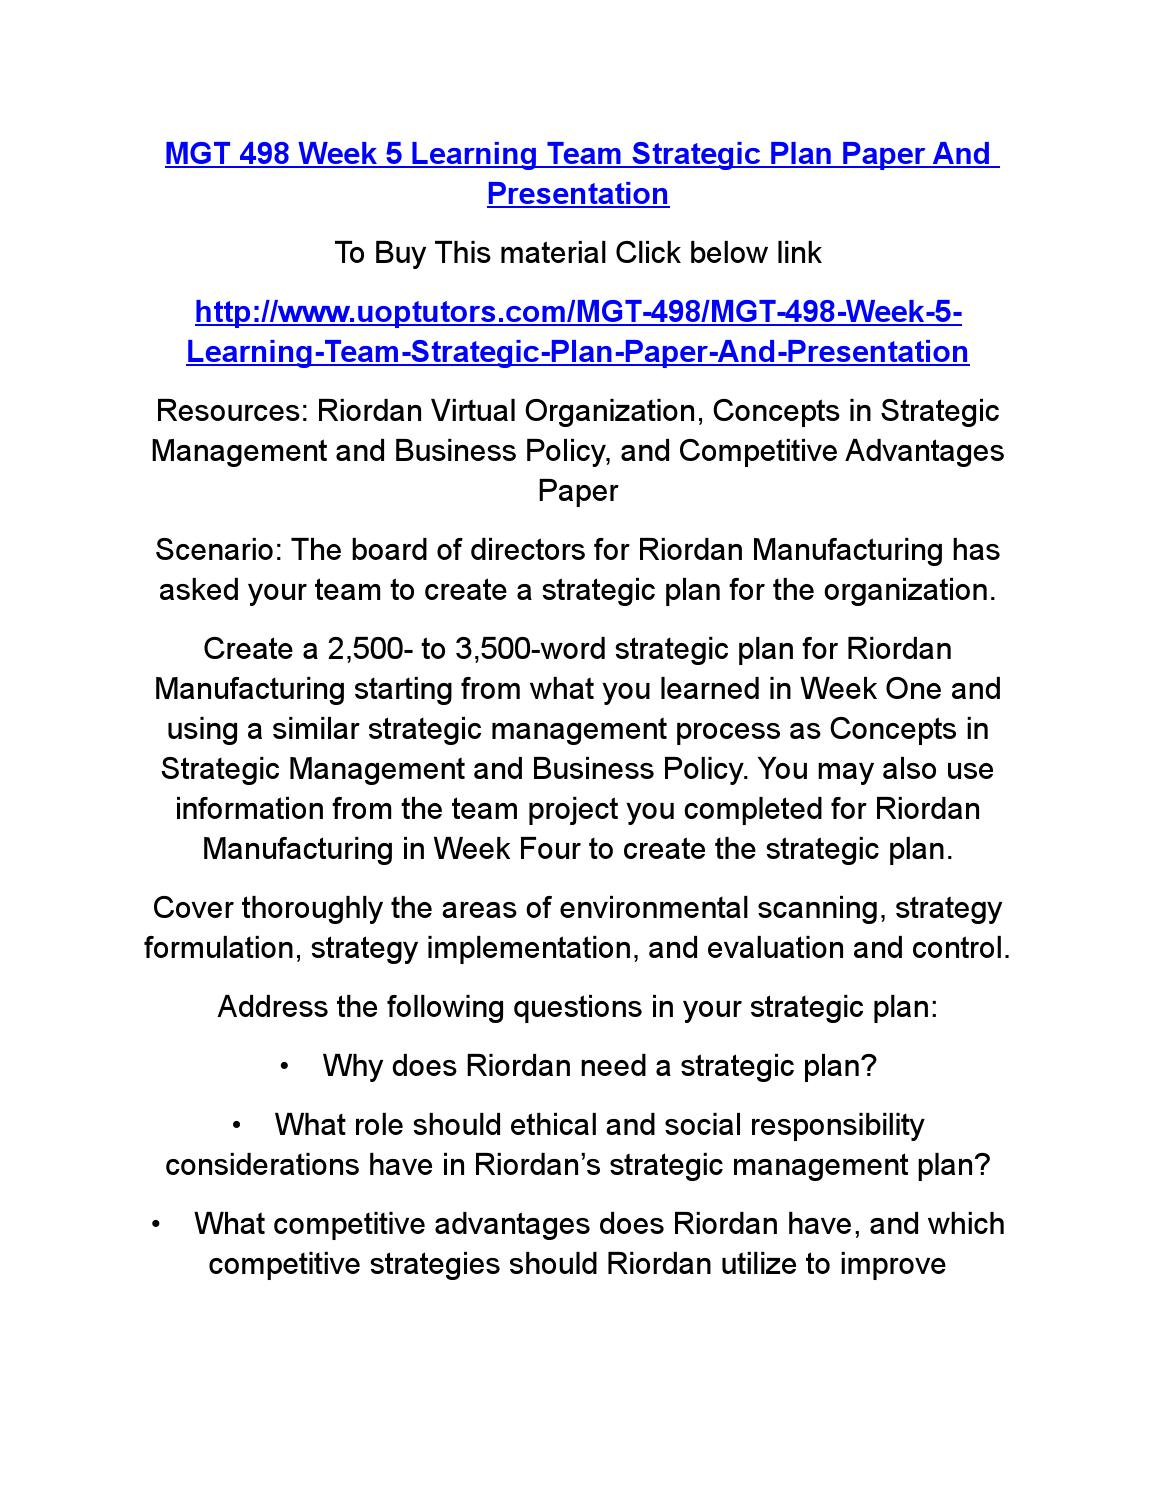 week 5 riordan manufacturing strategic plan Mgt 498 week 5 team assignment strategic plan paper and presentation resources: riordan virtual organization, concepts in strategic management and business policy, and competitive.